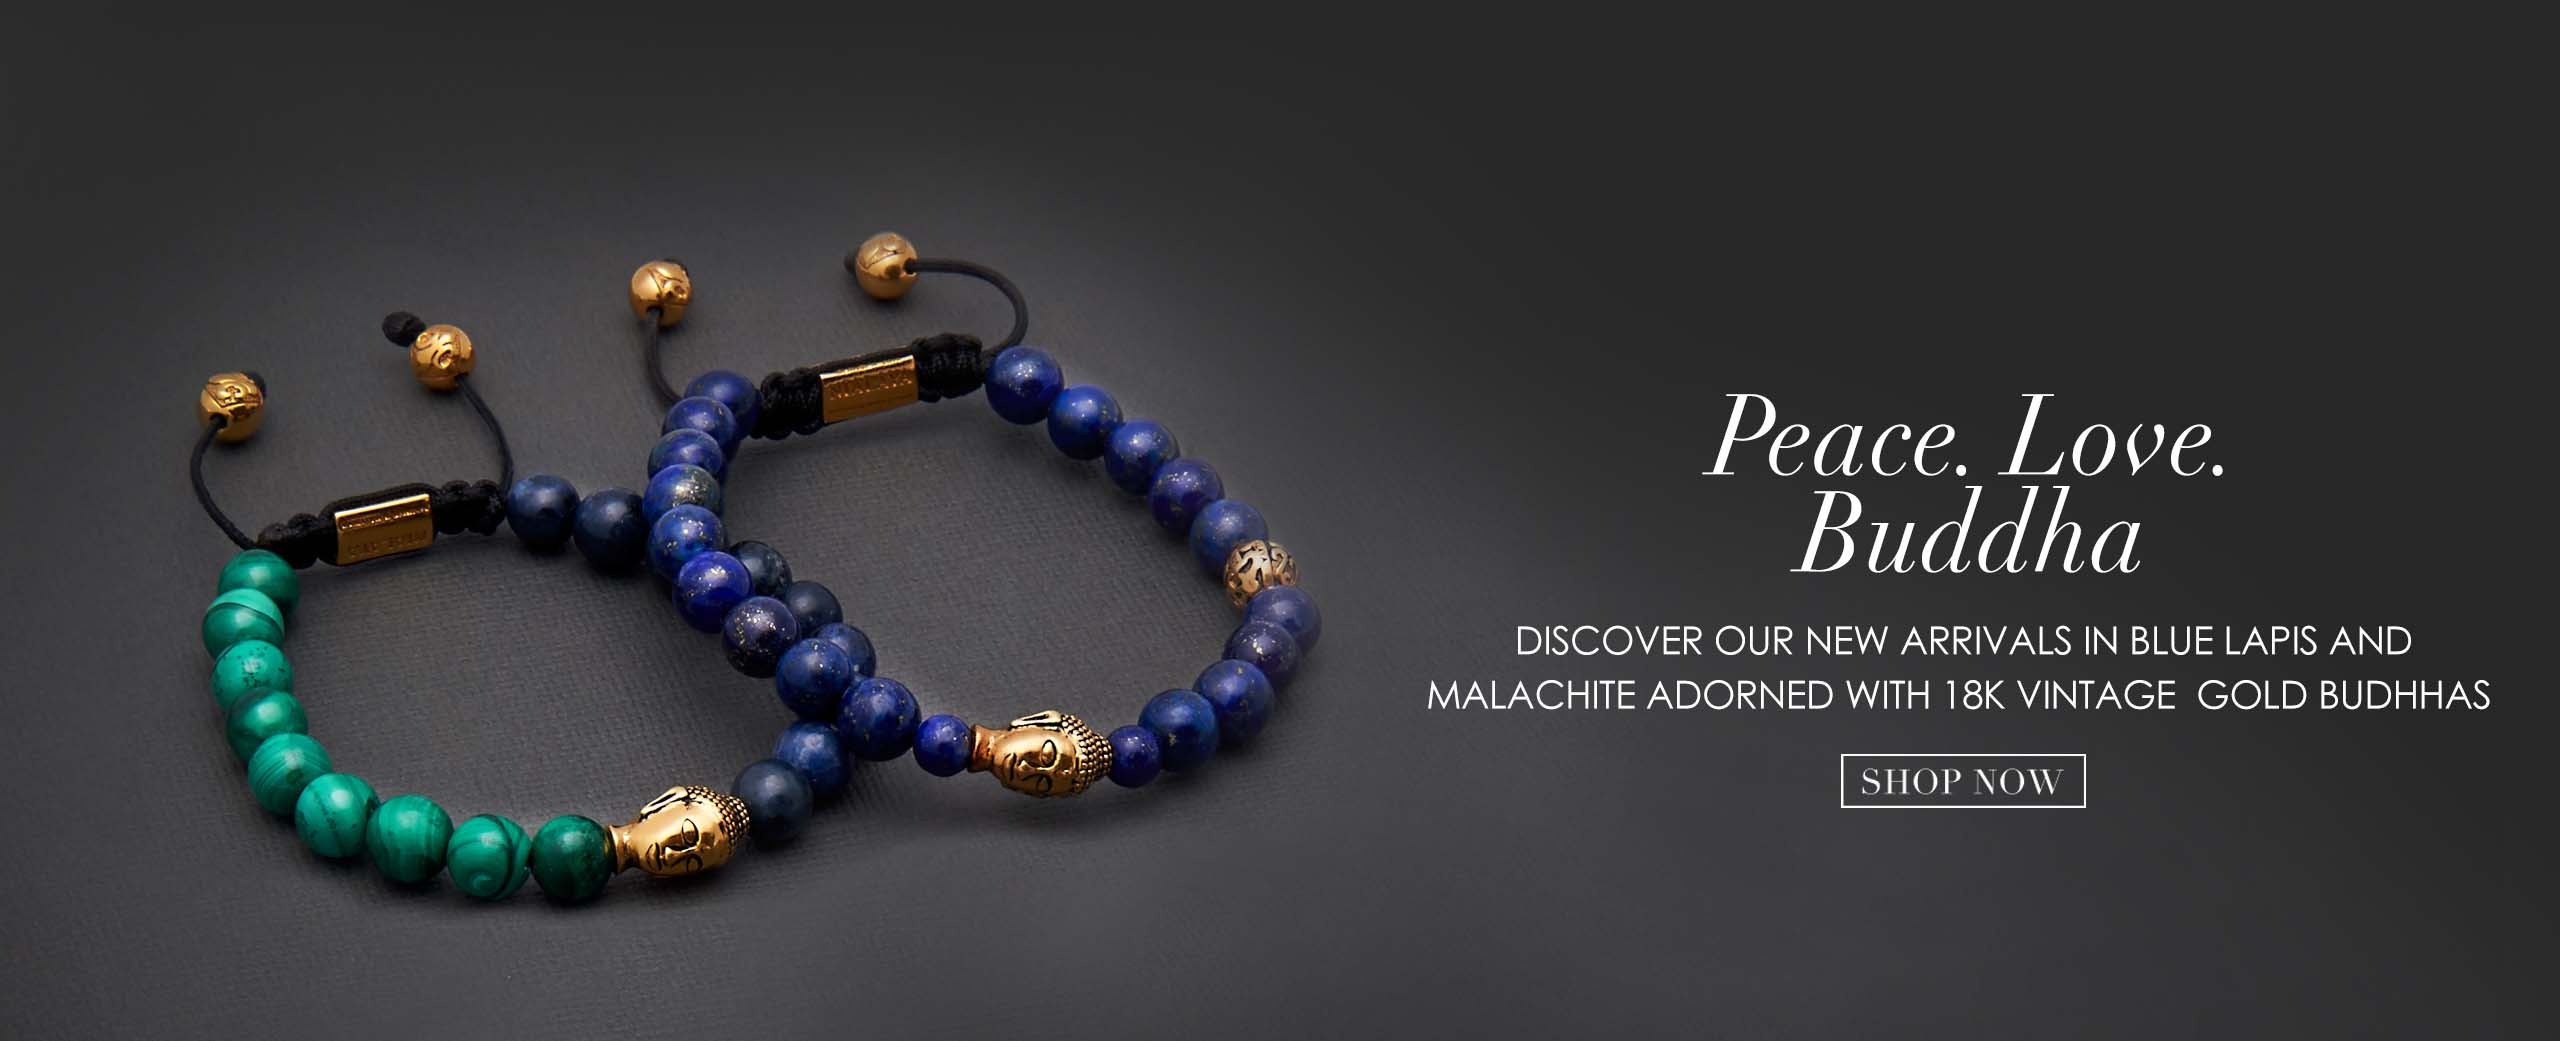 Nialaya Jewelry | Designer Jewelry for Men & Women